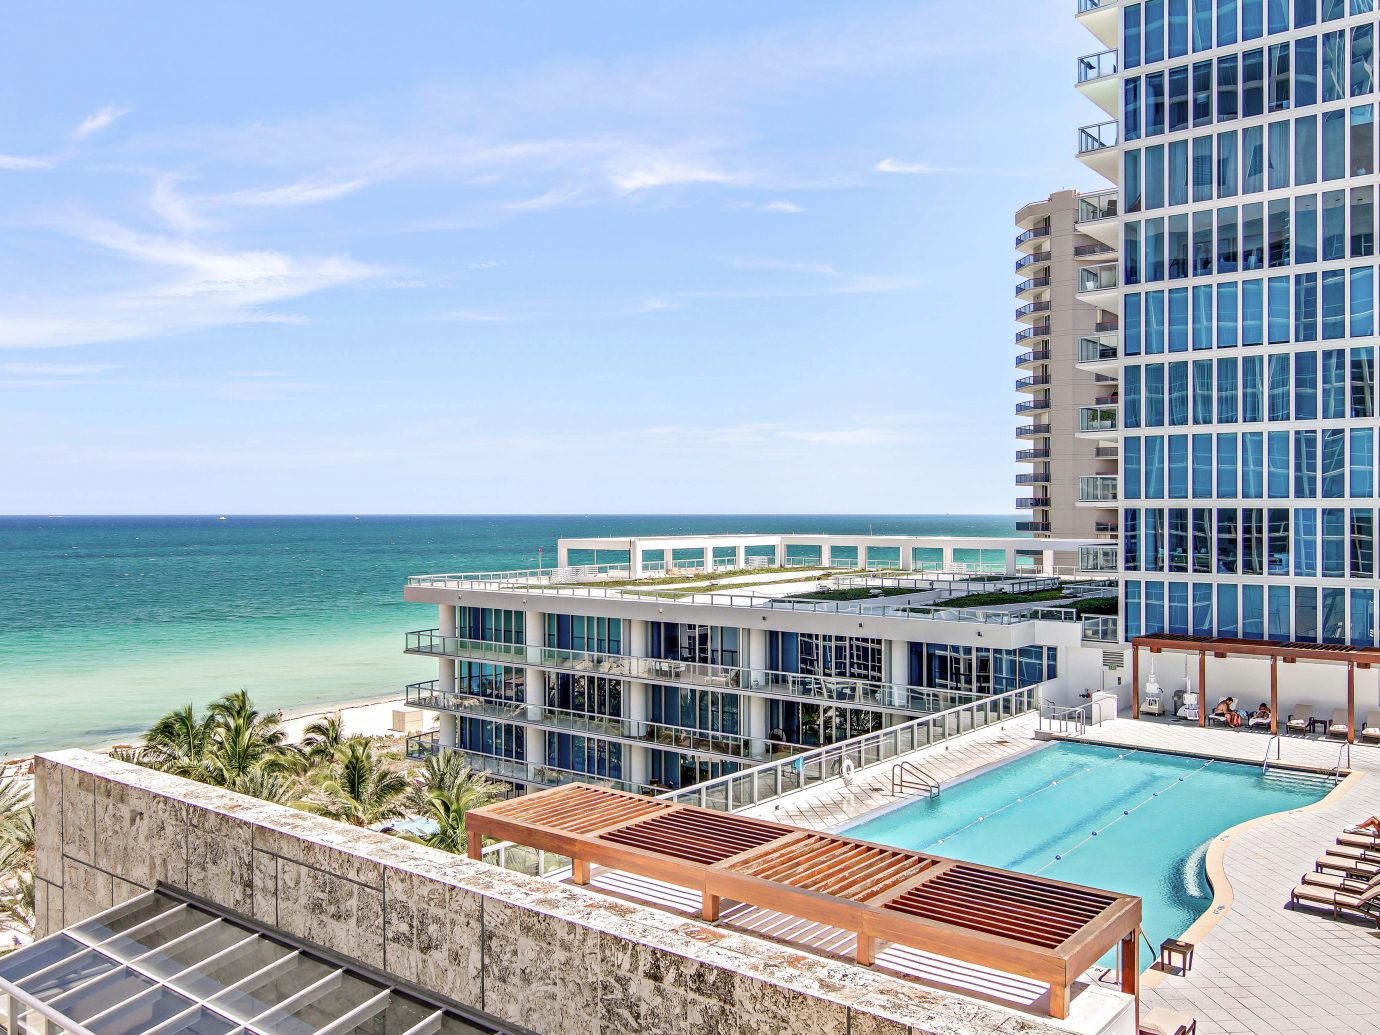 Beach Beachfront City Health + Wellness Hotels Luxury Ocean Romantic Yoga Retreats outdoor condominium property swimming pool Resort real estate facade estate apartment marina dock shore